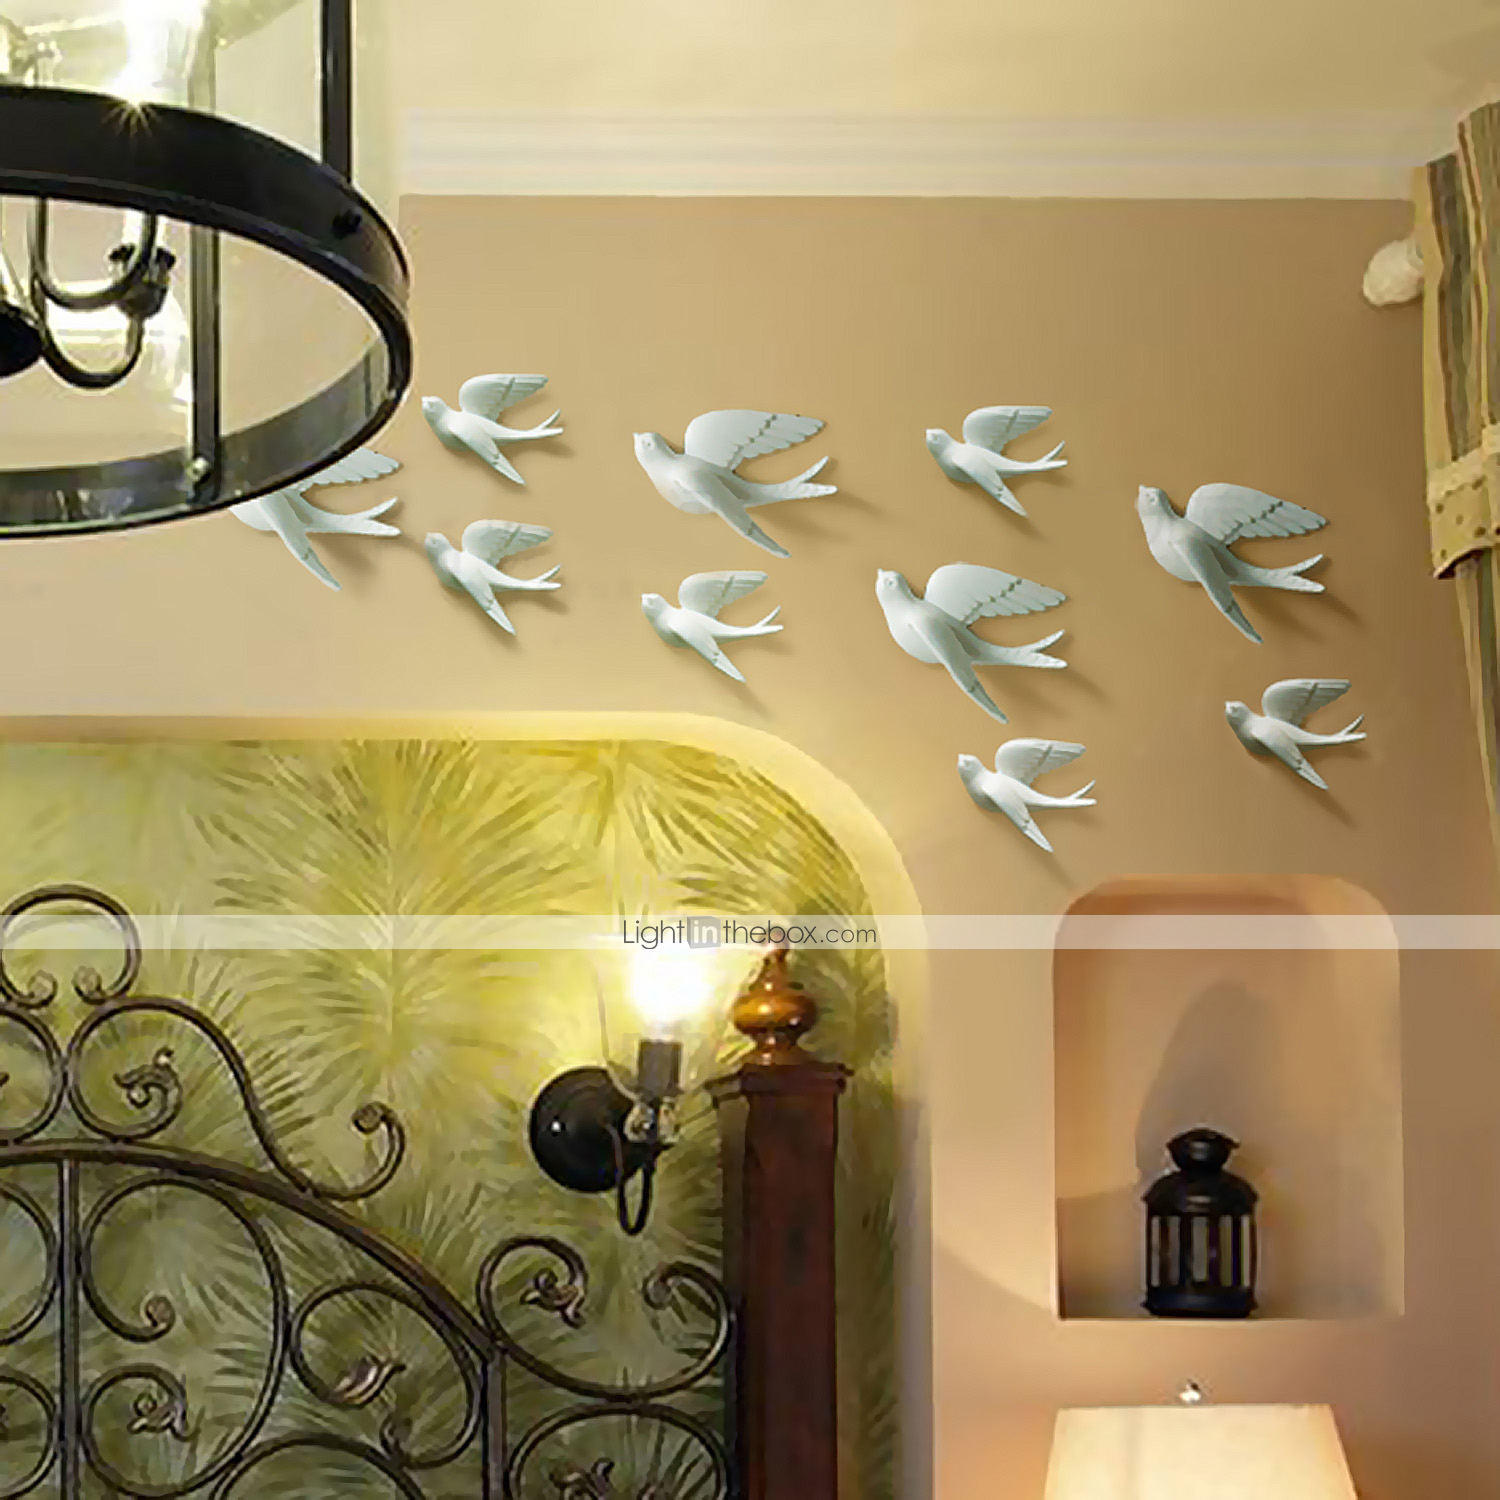 metal wall art wall decor the dove flying wall decor set of 5 2263213 2016. Black Bedroom Furniture Sets. Home Design Ideas